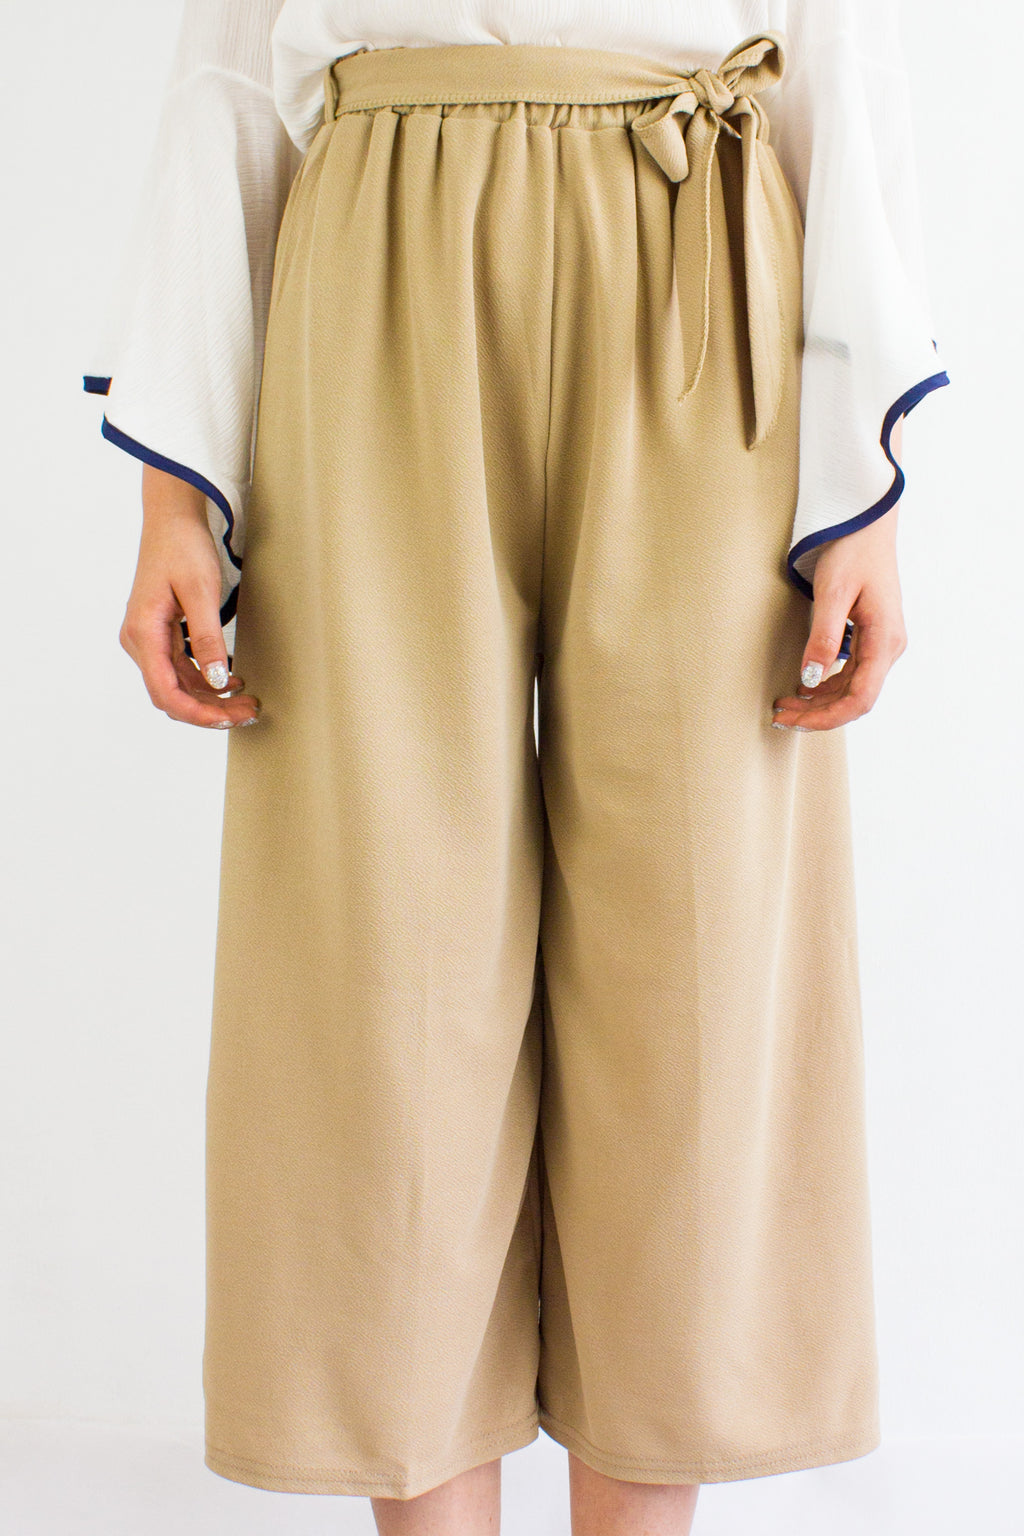 Sashay into Work and Play Culottes in Nude